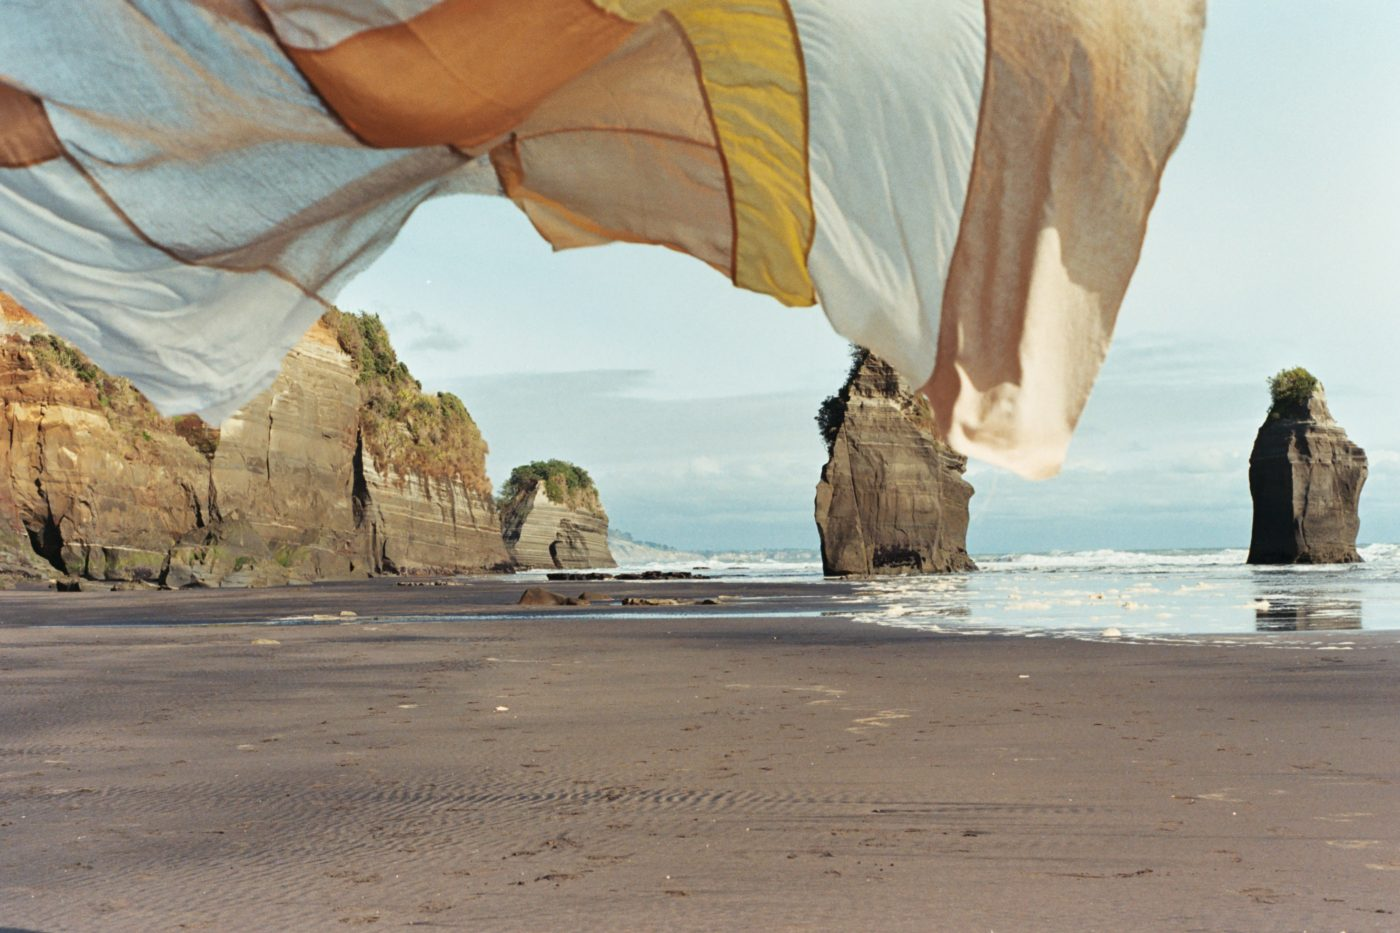 Textile artwork blowing in the wind on the beach, with the sea, cliffs and stacks in the distance